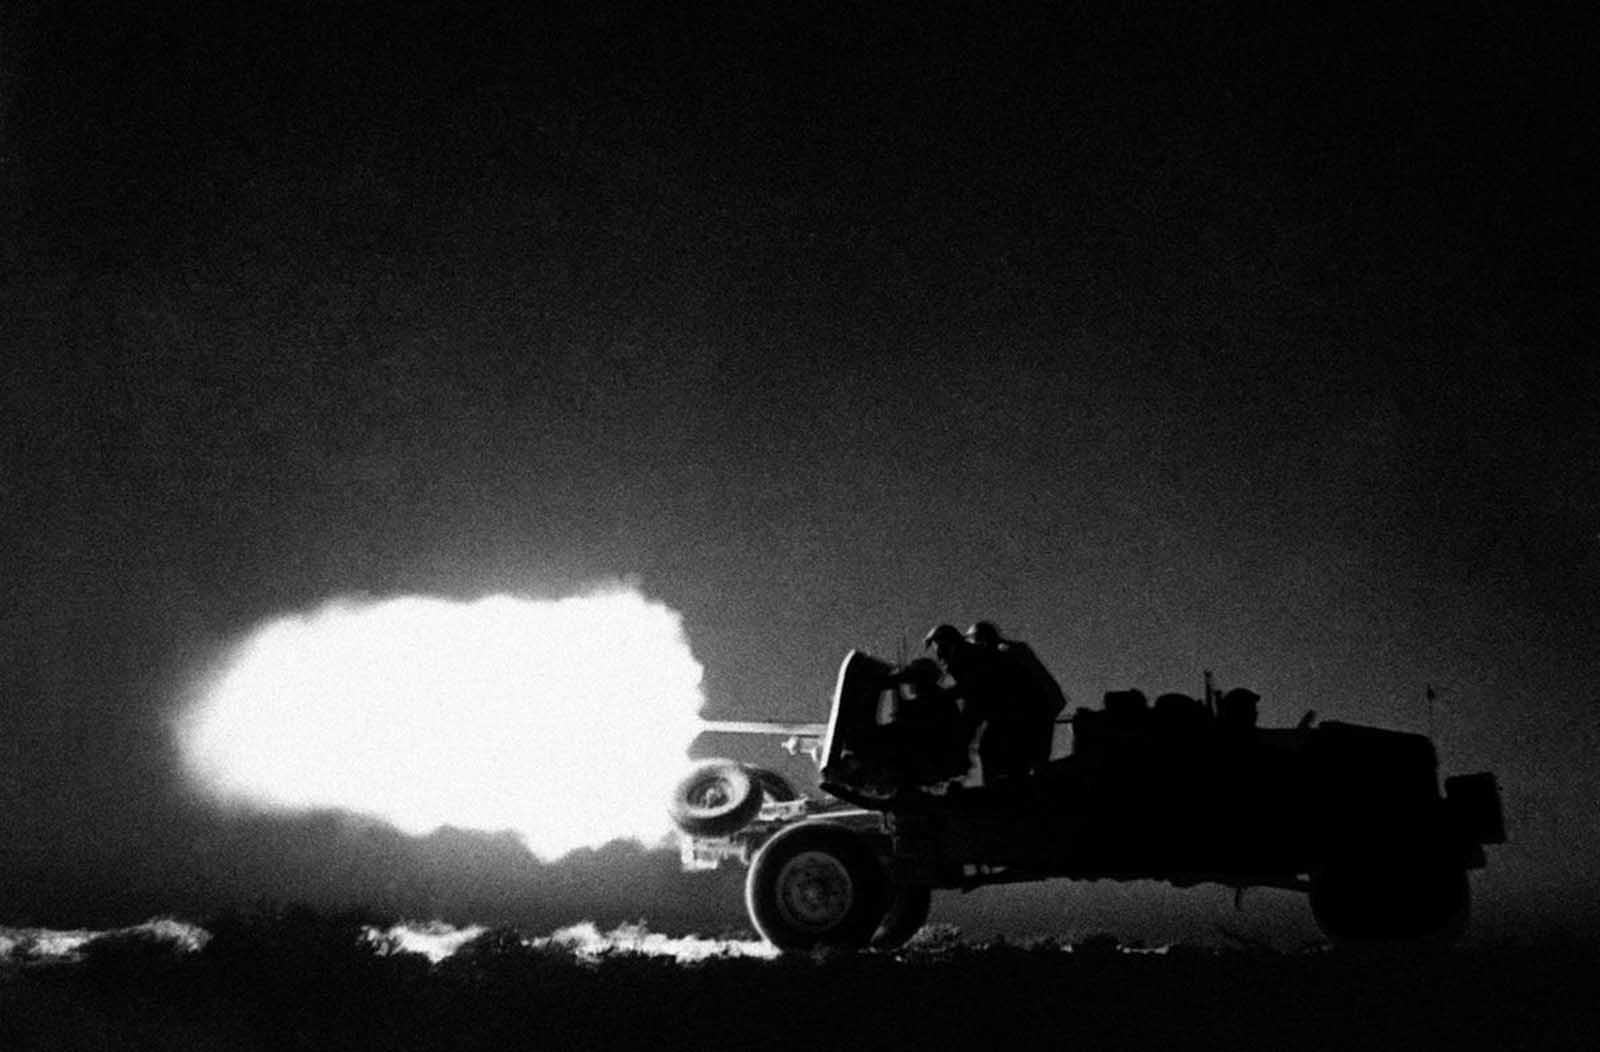 Truck-mounted anti-tank guns, used as highly mobile, hard-hitting artillery units, speed over the desert and attack the enemy from all sorts of unexpected quarters. A mobile anti-tank unit of the Eighth Army in action, somewhere in the desert, Libya, on July 26, 1942.